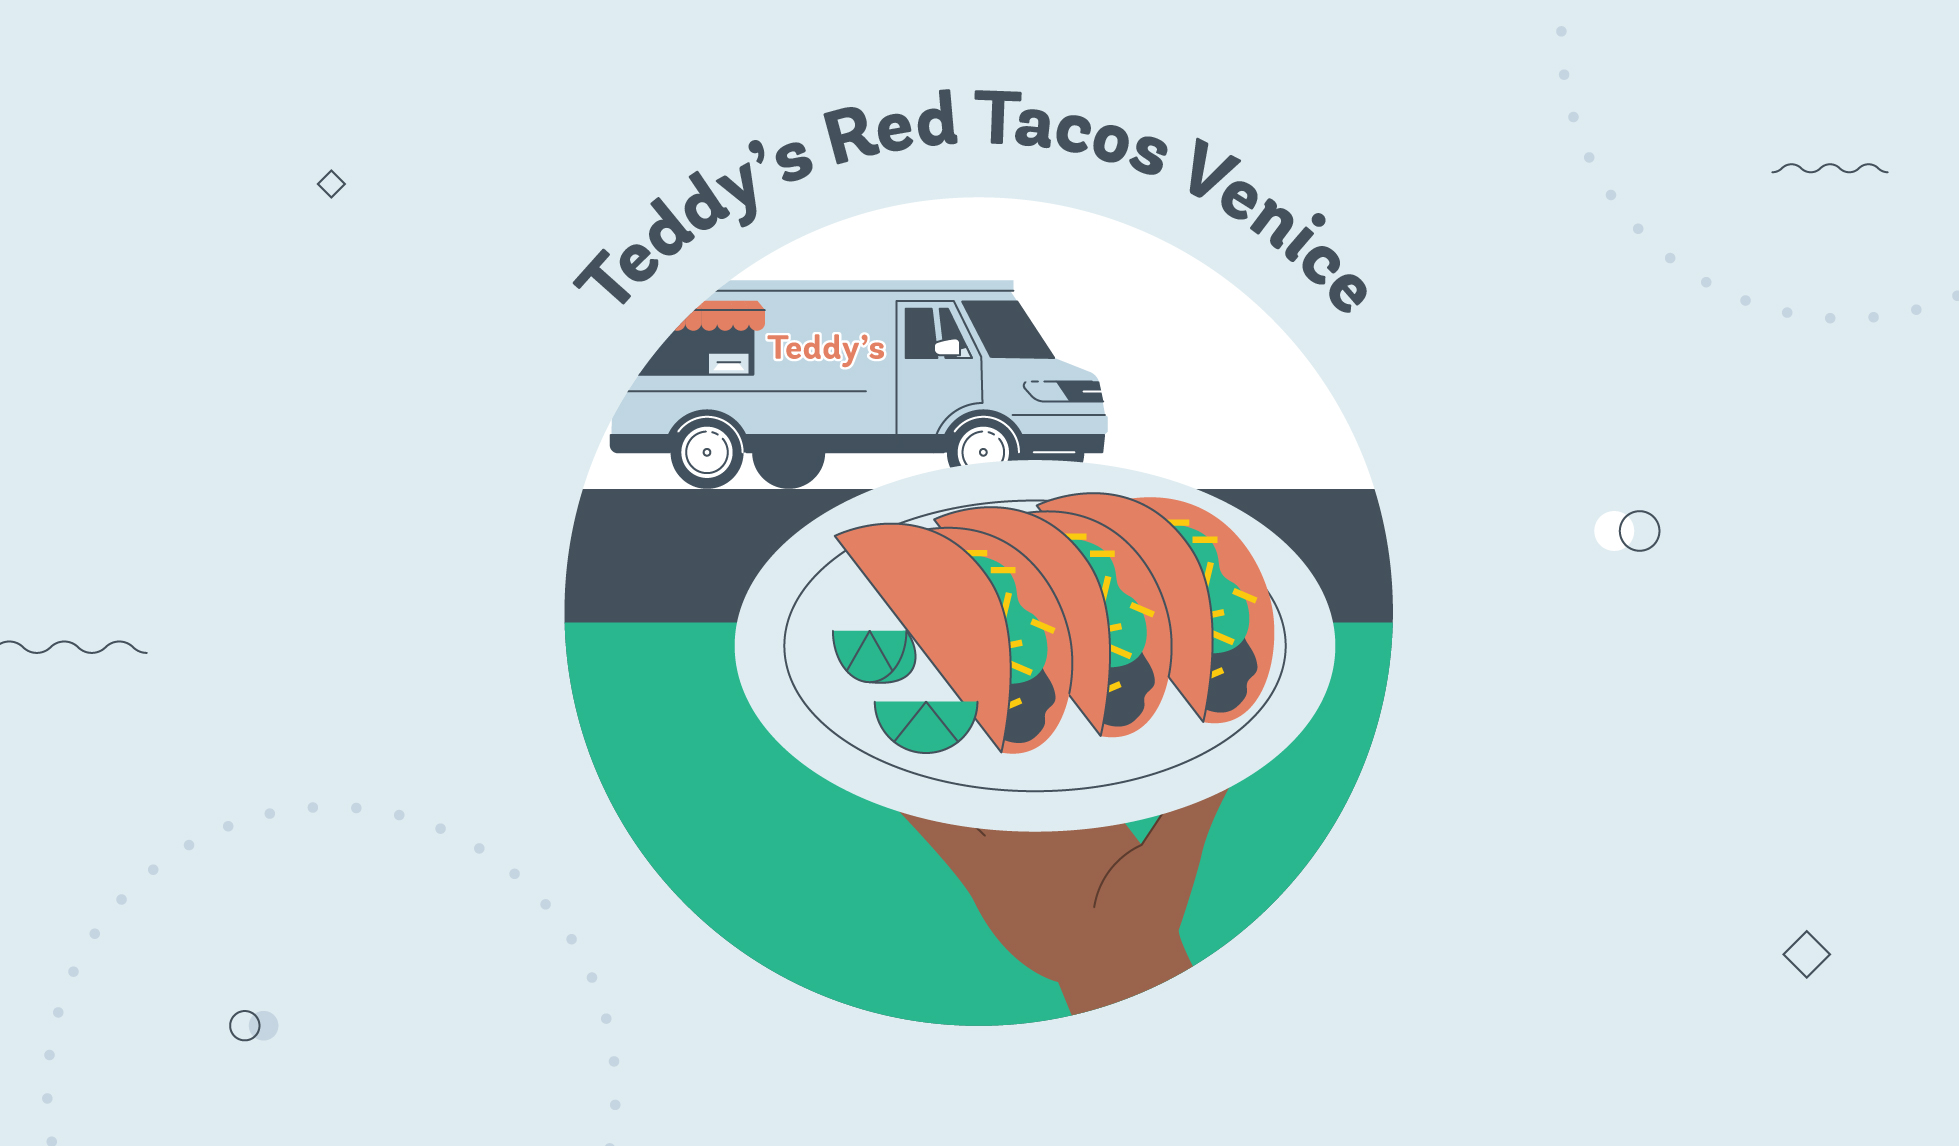 Teddy's Red Tacos Venice graphic